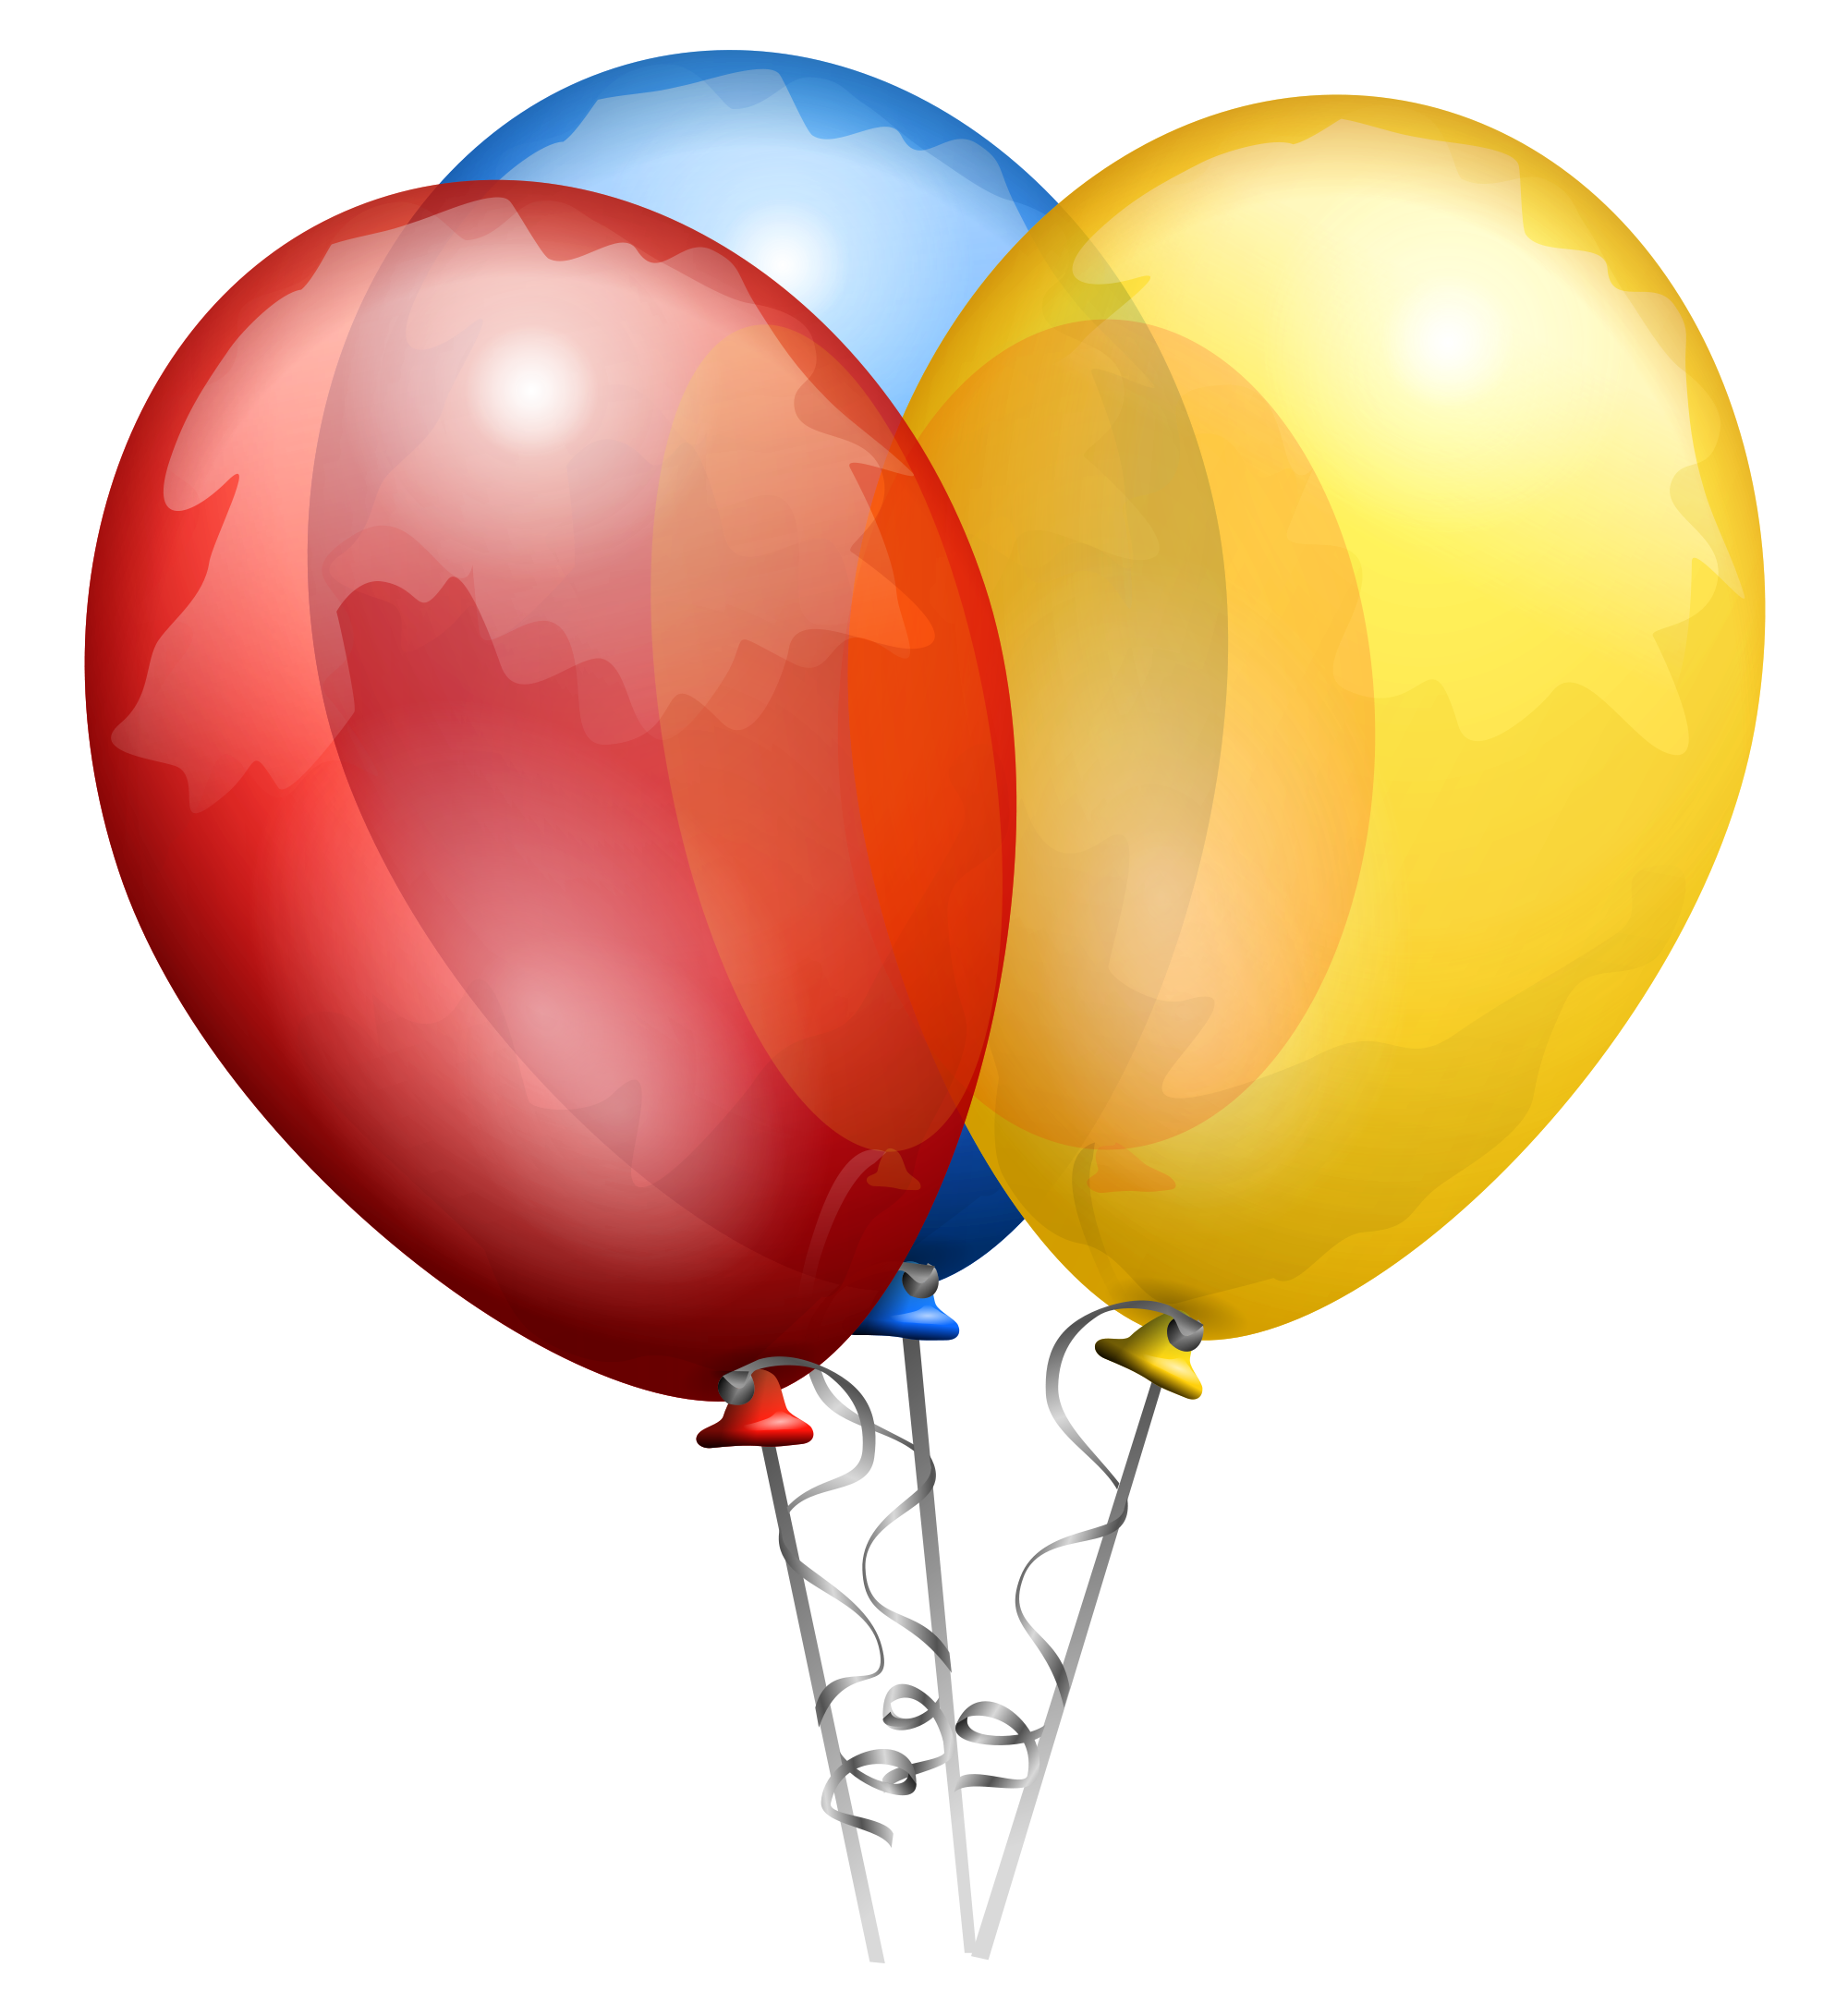 PNG File Name: Balloons PlusPng.com  - Ballons PNG